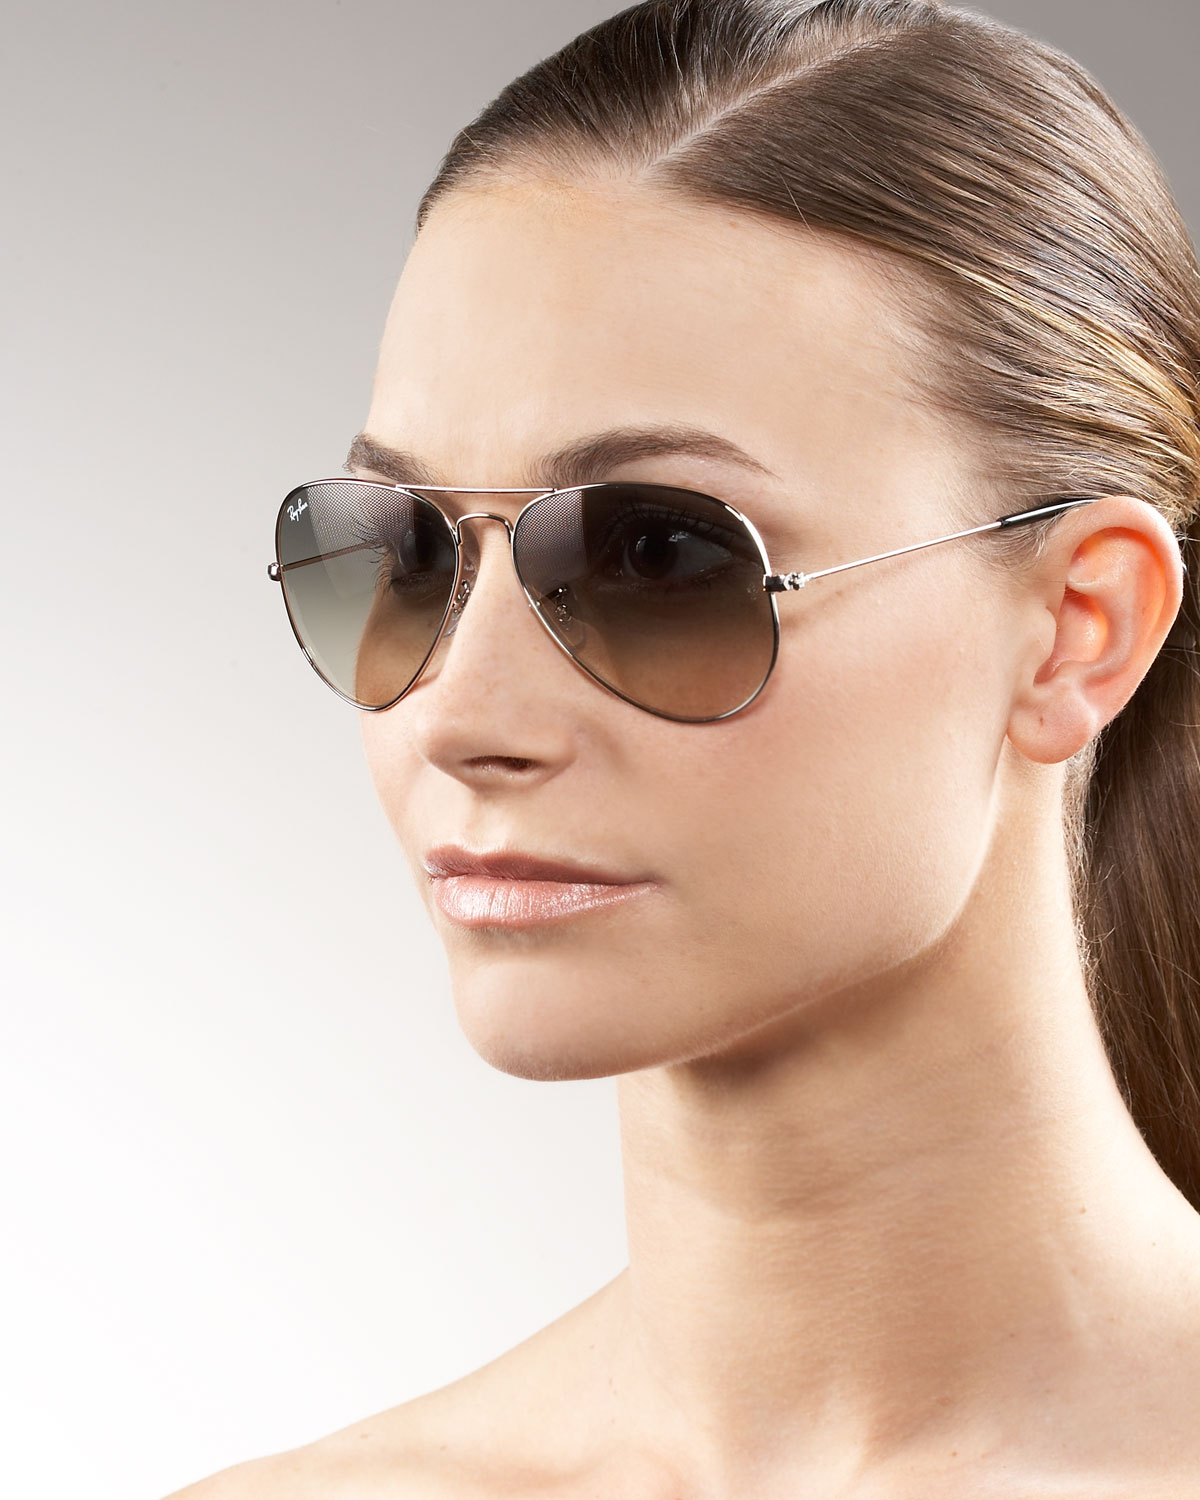 Lyst - Ray-Ban Classic Aviator Sunglasses in Brown f6b07d33d9ae